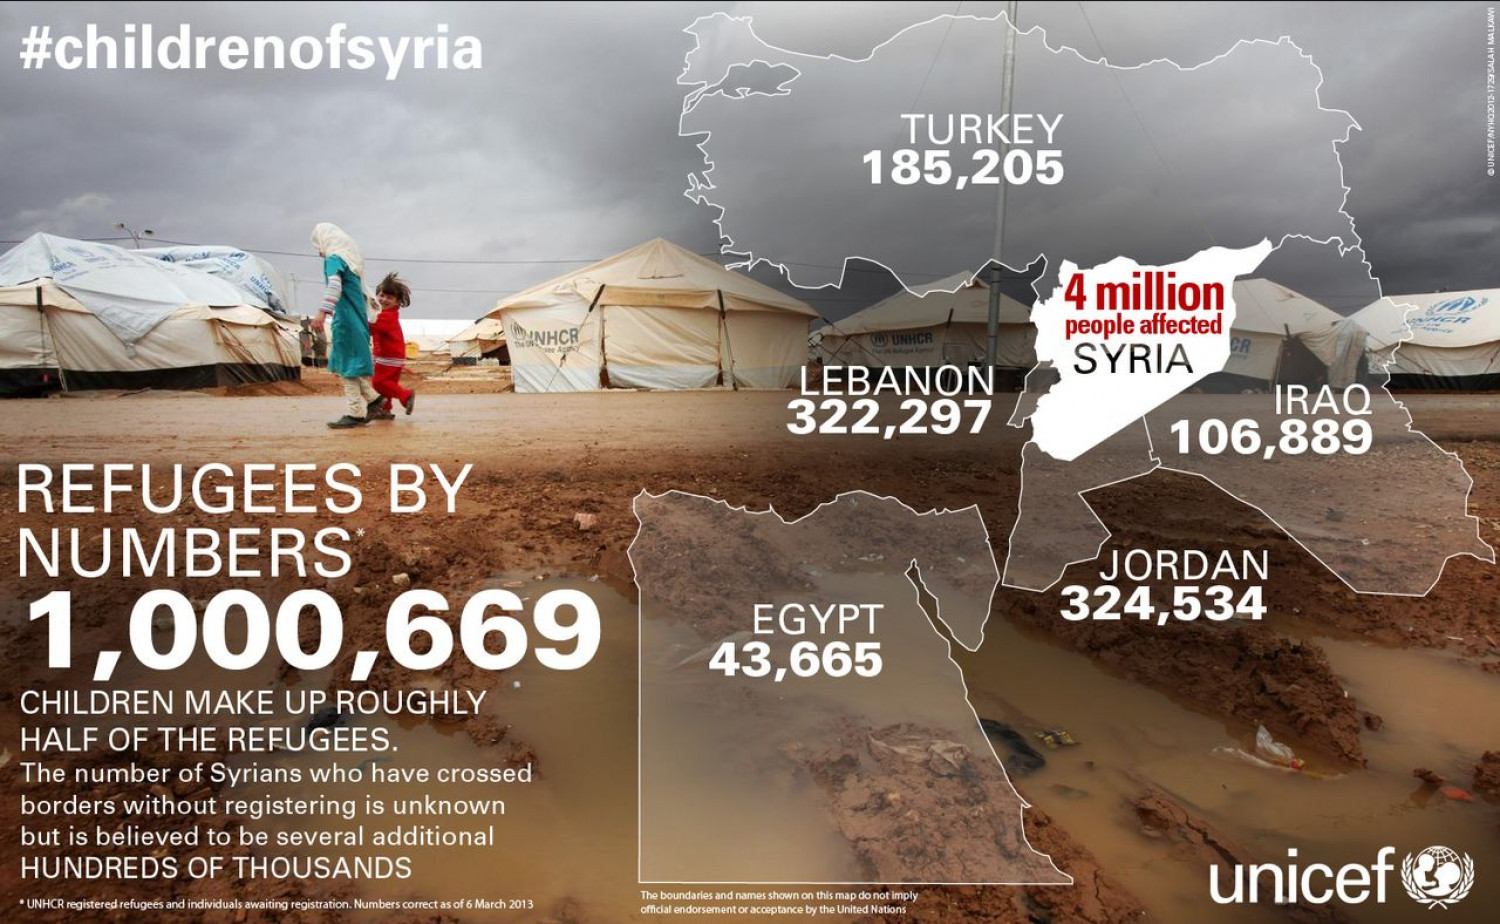 #childrenofsyria II Infographic